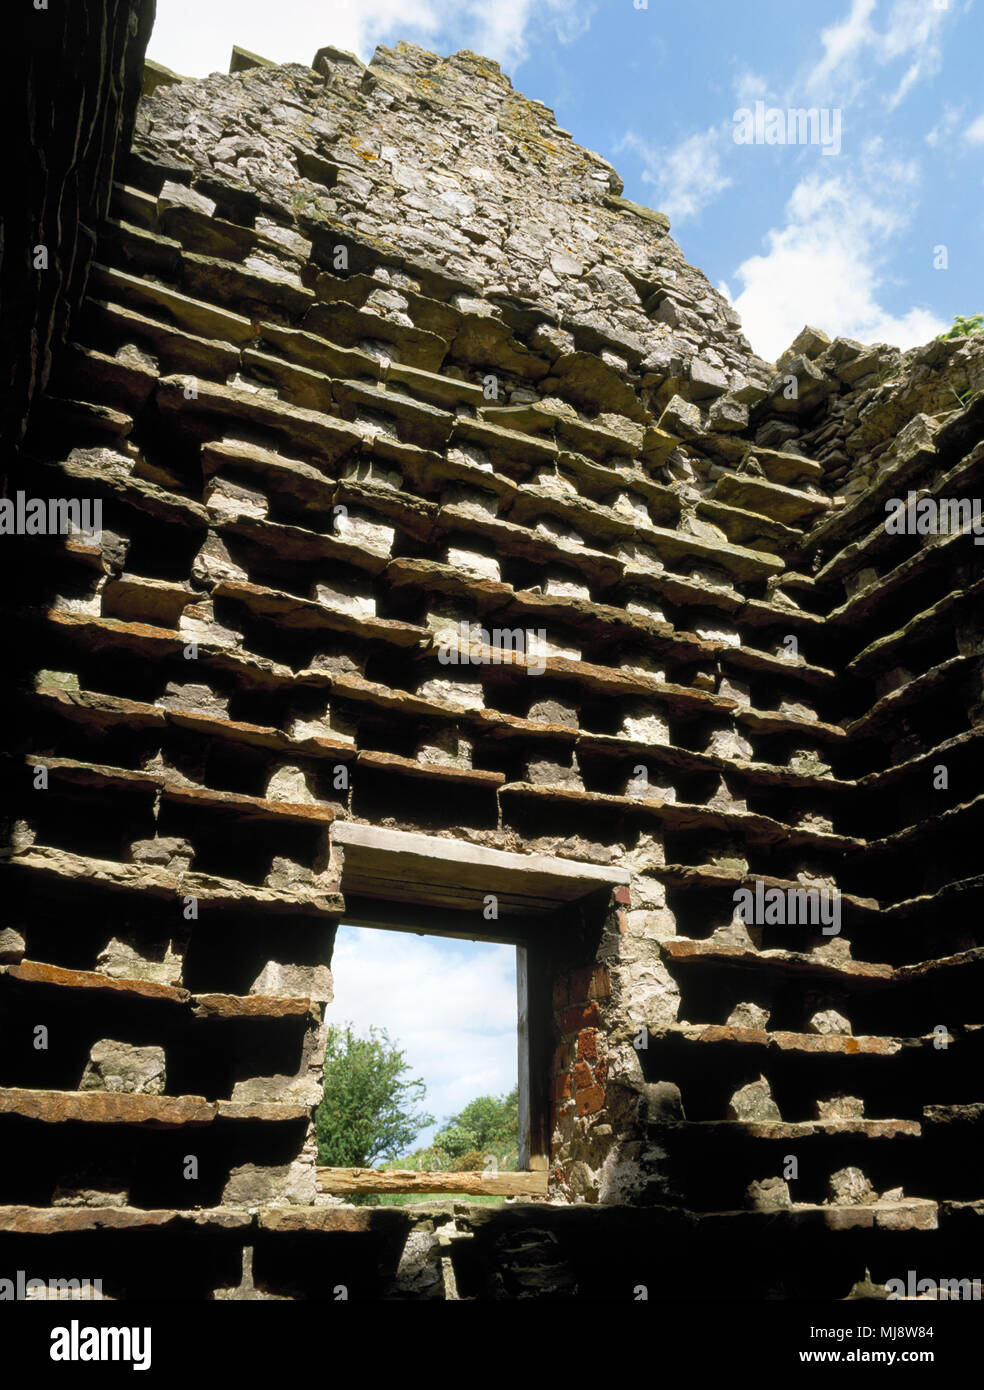 Nesting boxes inside ruined 17th century tall square dovecote at Gop Farm, Trelawnyd, Flintshire, North Wales, UK. Contained around 700 nest boxes. Stock Photo